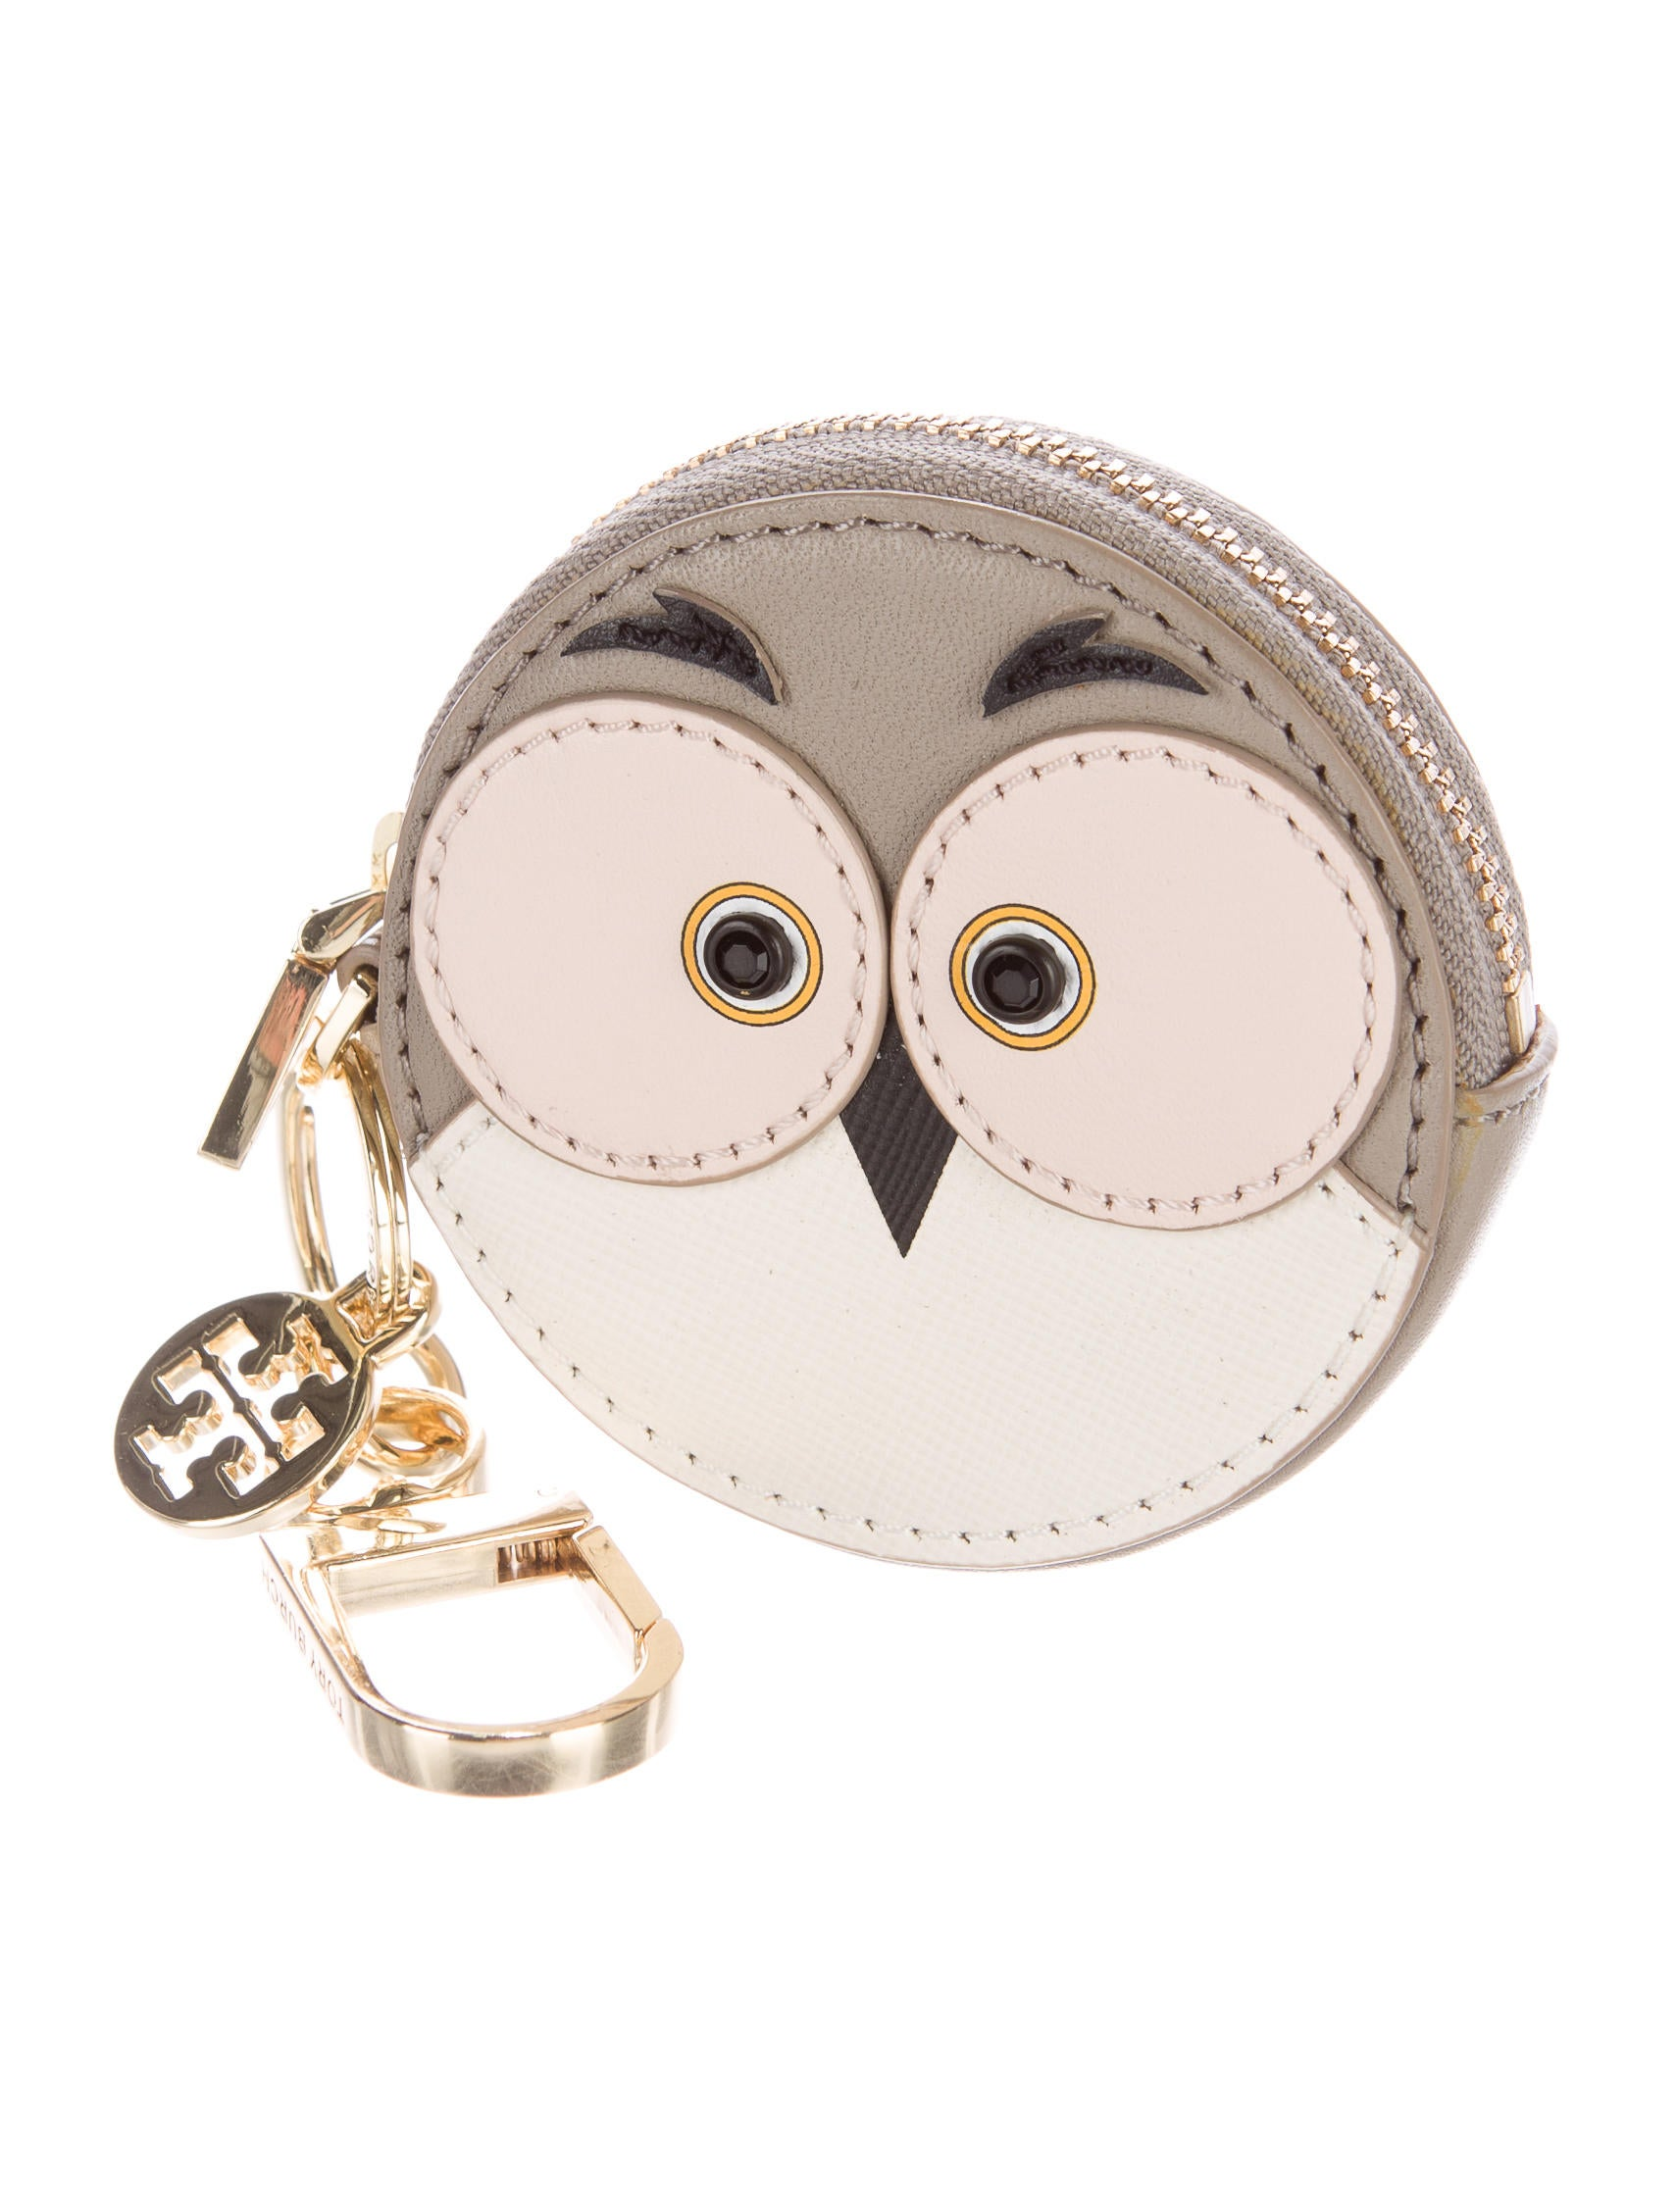 Tory Burch Owl Coin Purse - Accessories - WTO88808 The